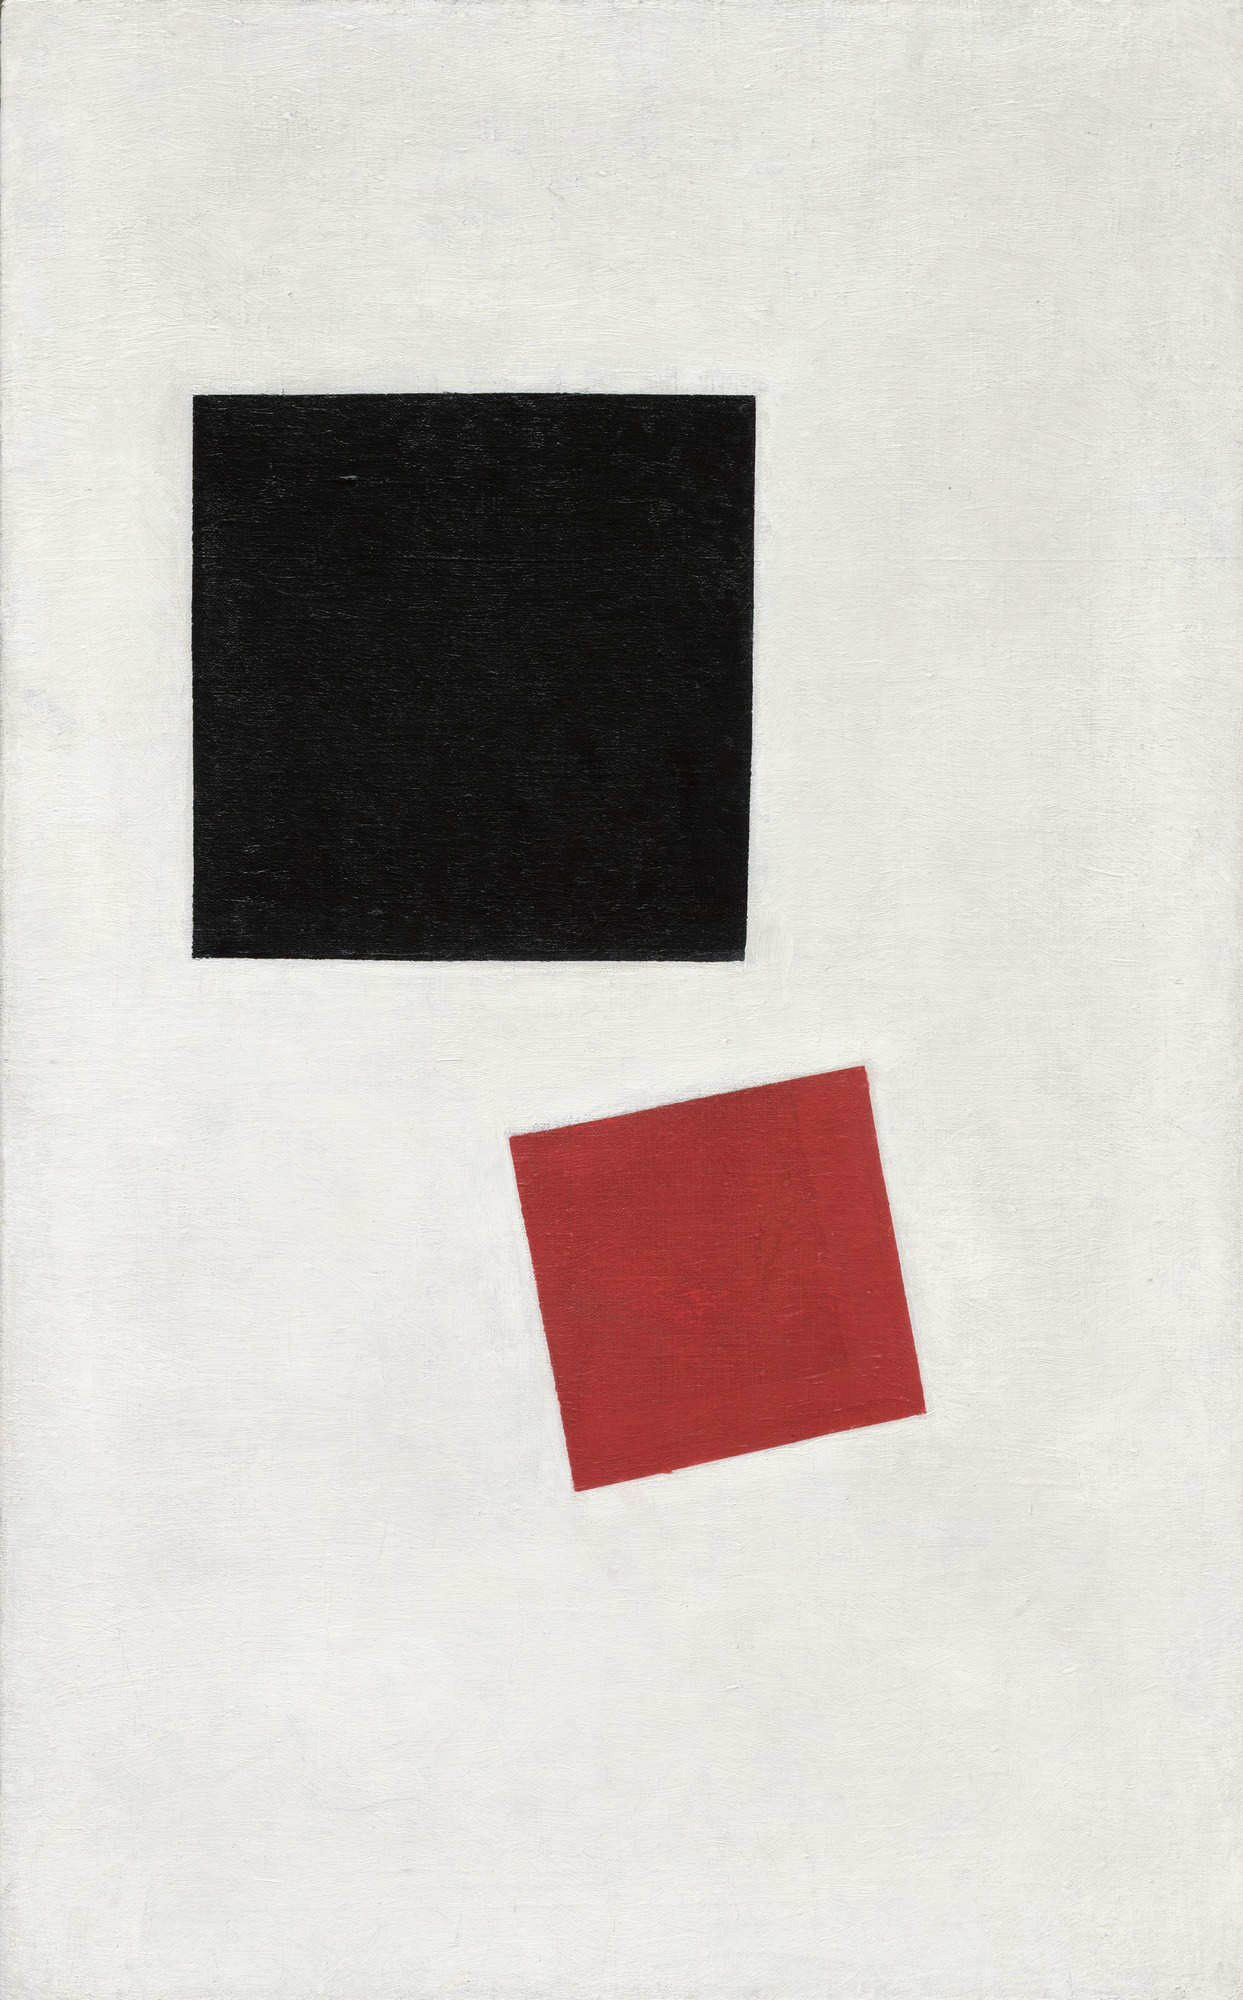 Black Square and Red Square, 1915 — Kazimir Malevich